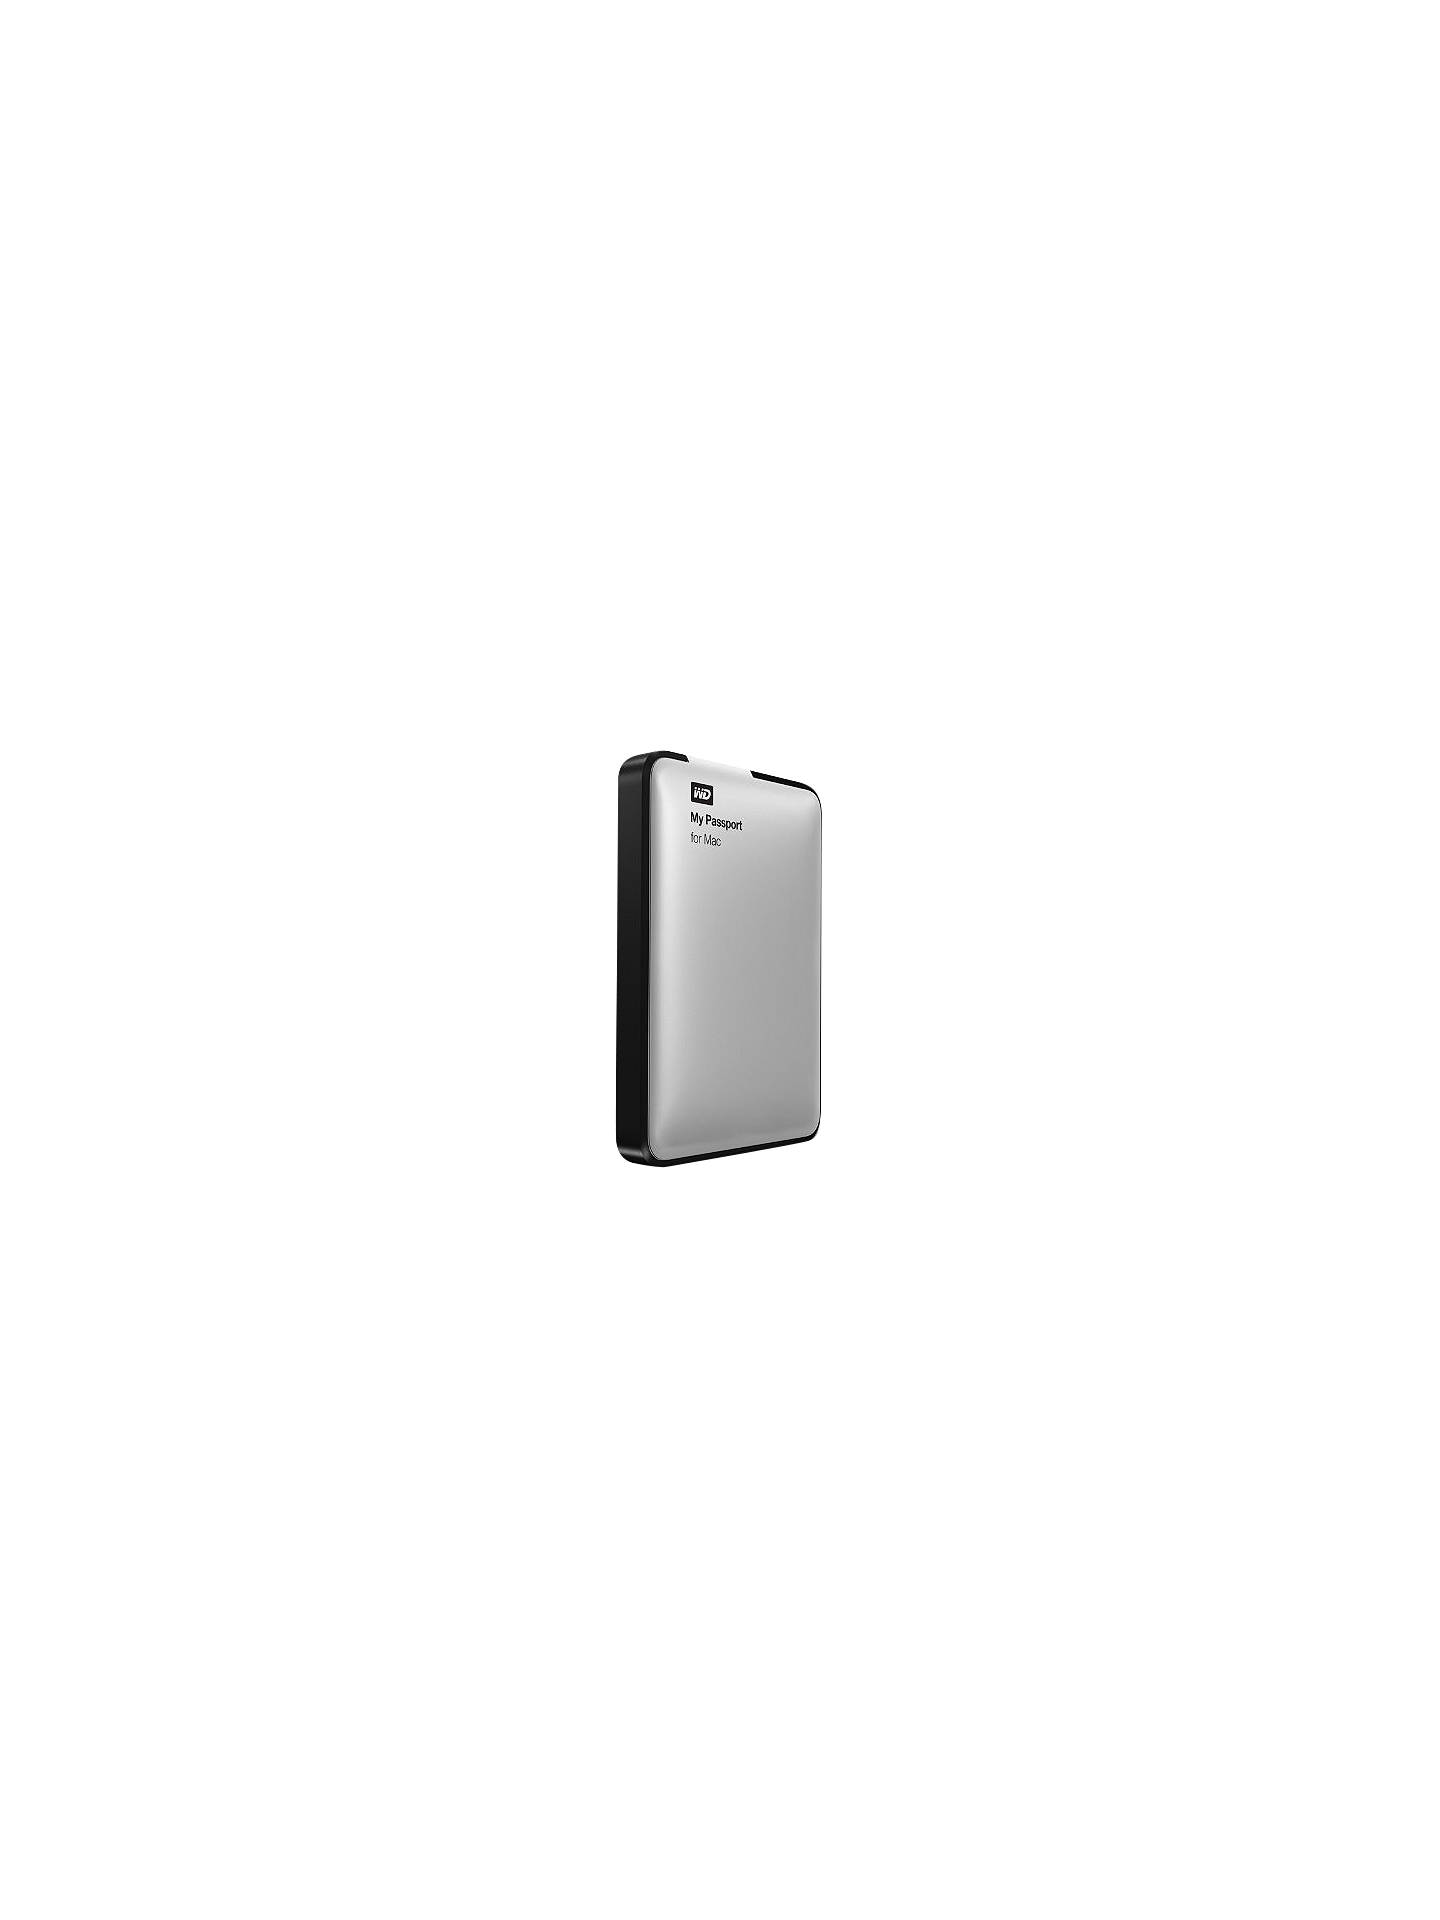 WD My Passport for Mac Portable Hard Drive, USB 3 0, 500GB, Silver